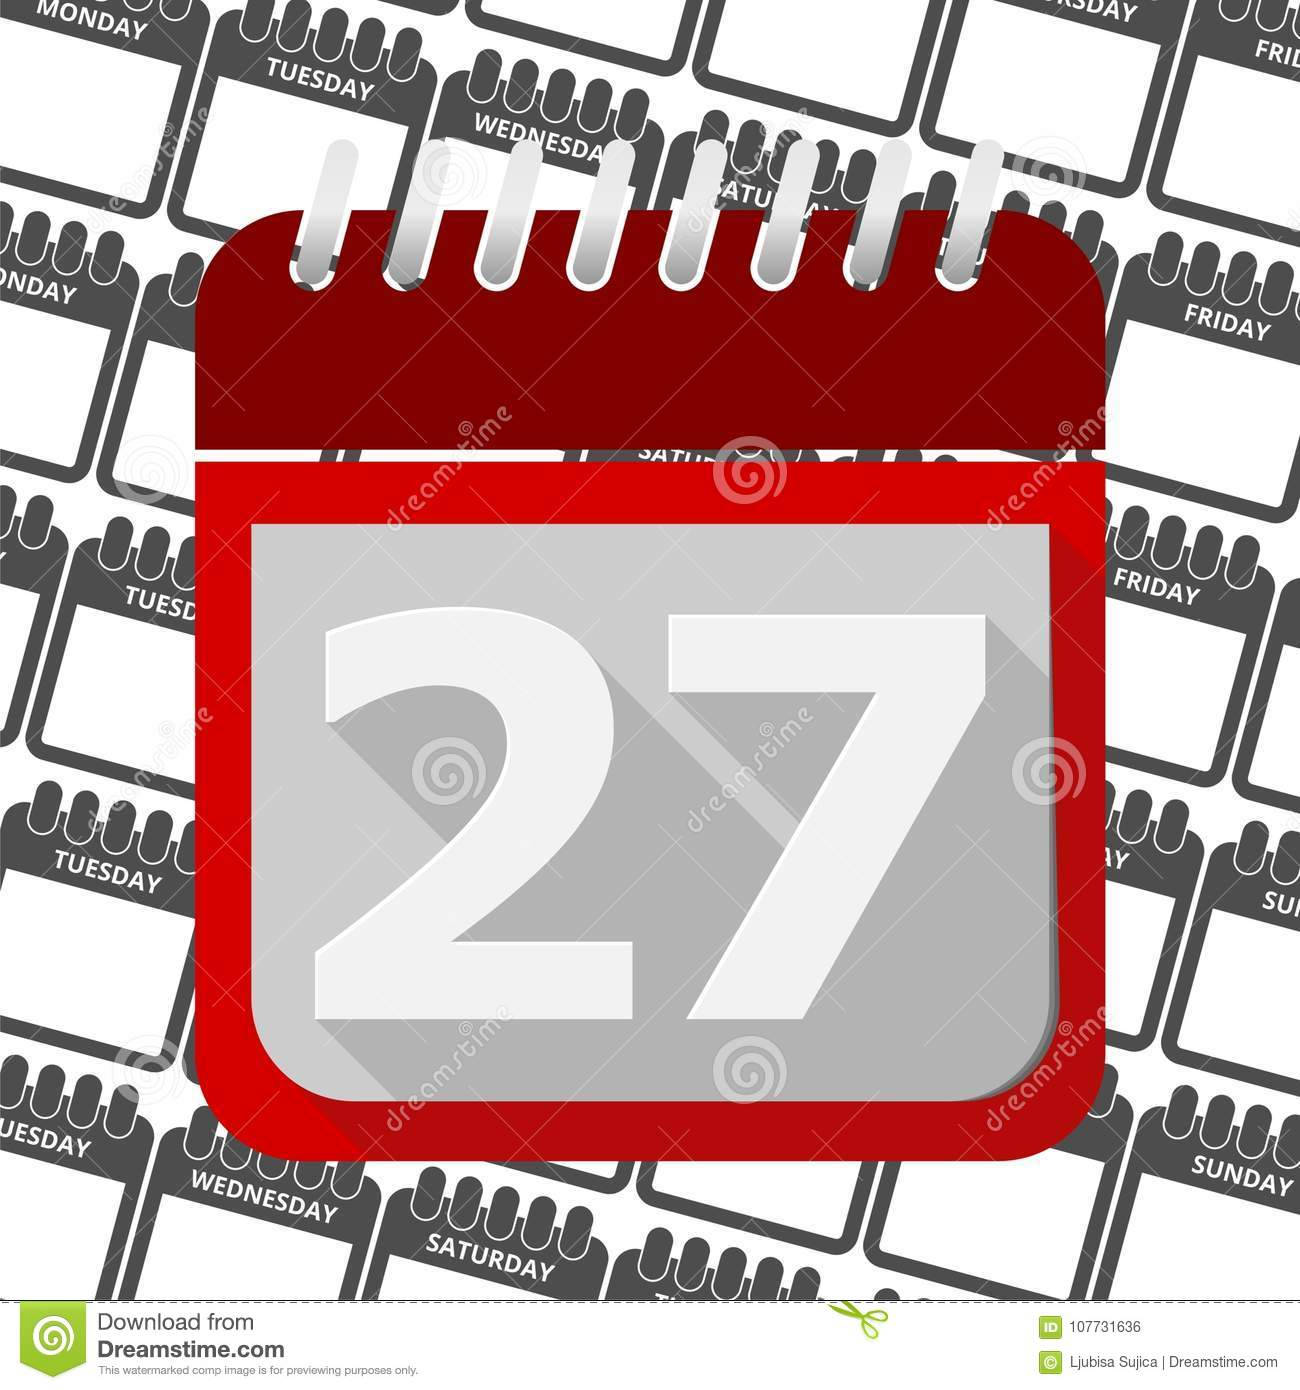 Atu Calendar.Red Calendar Vector Icon Number 27 Stock Vector Illustration Of